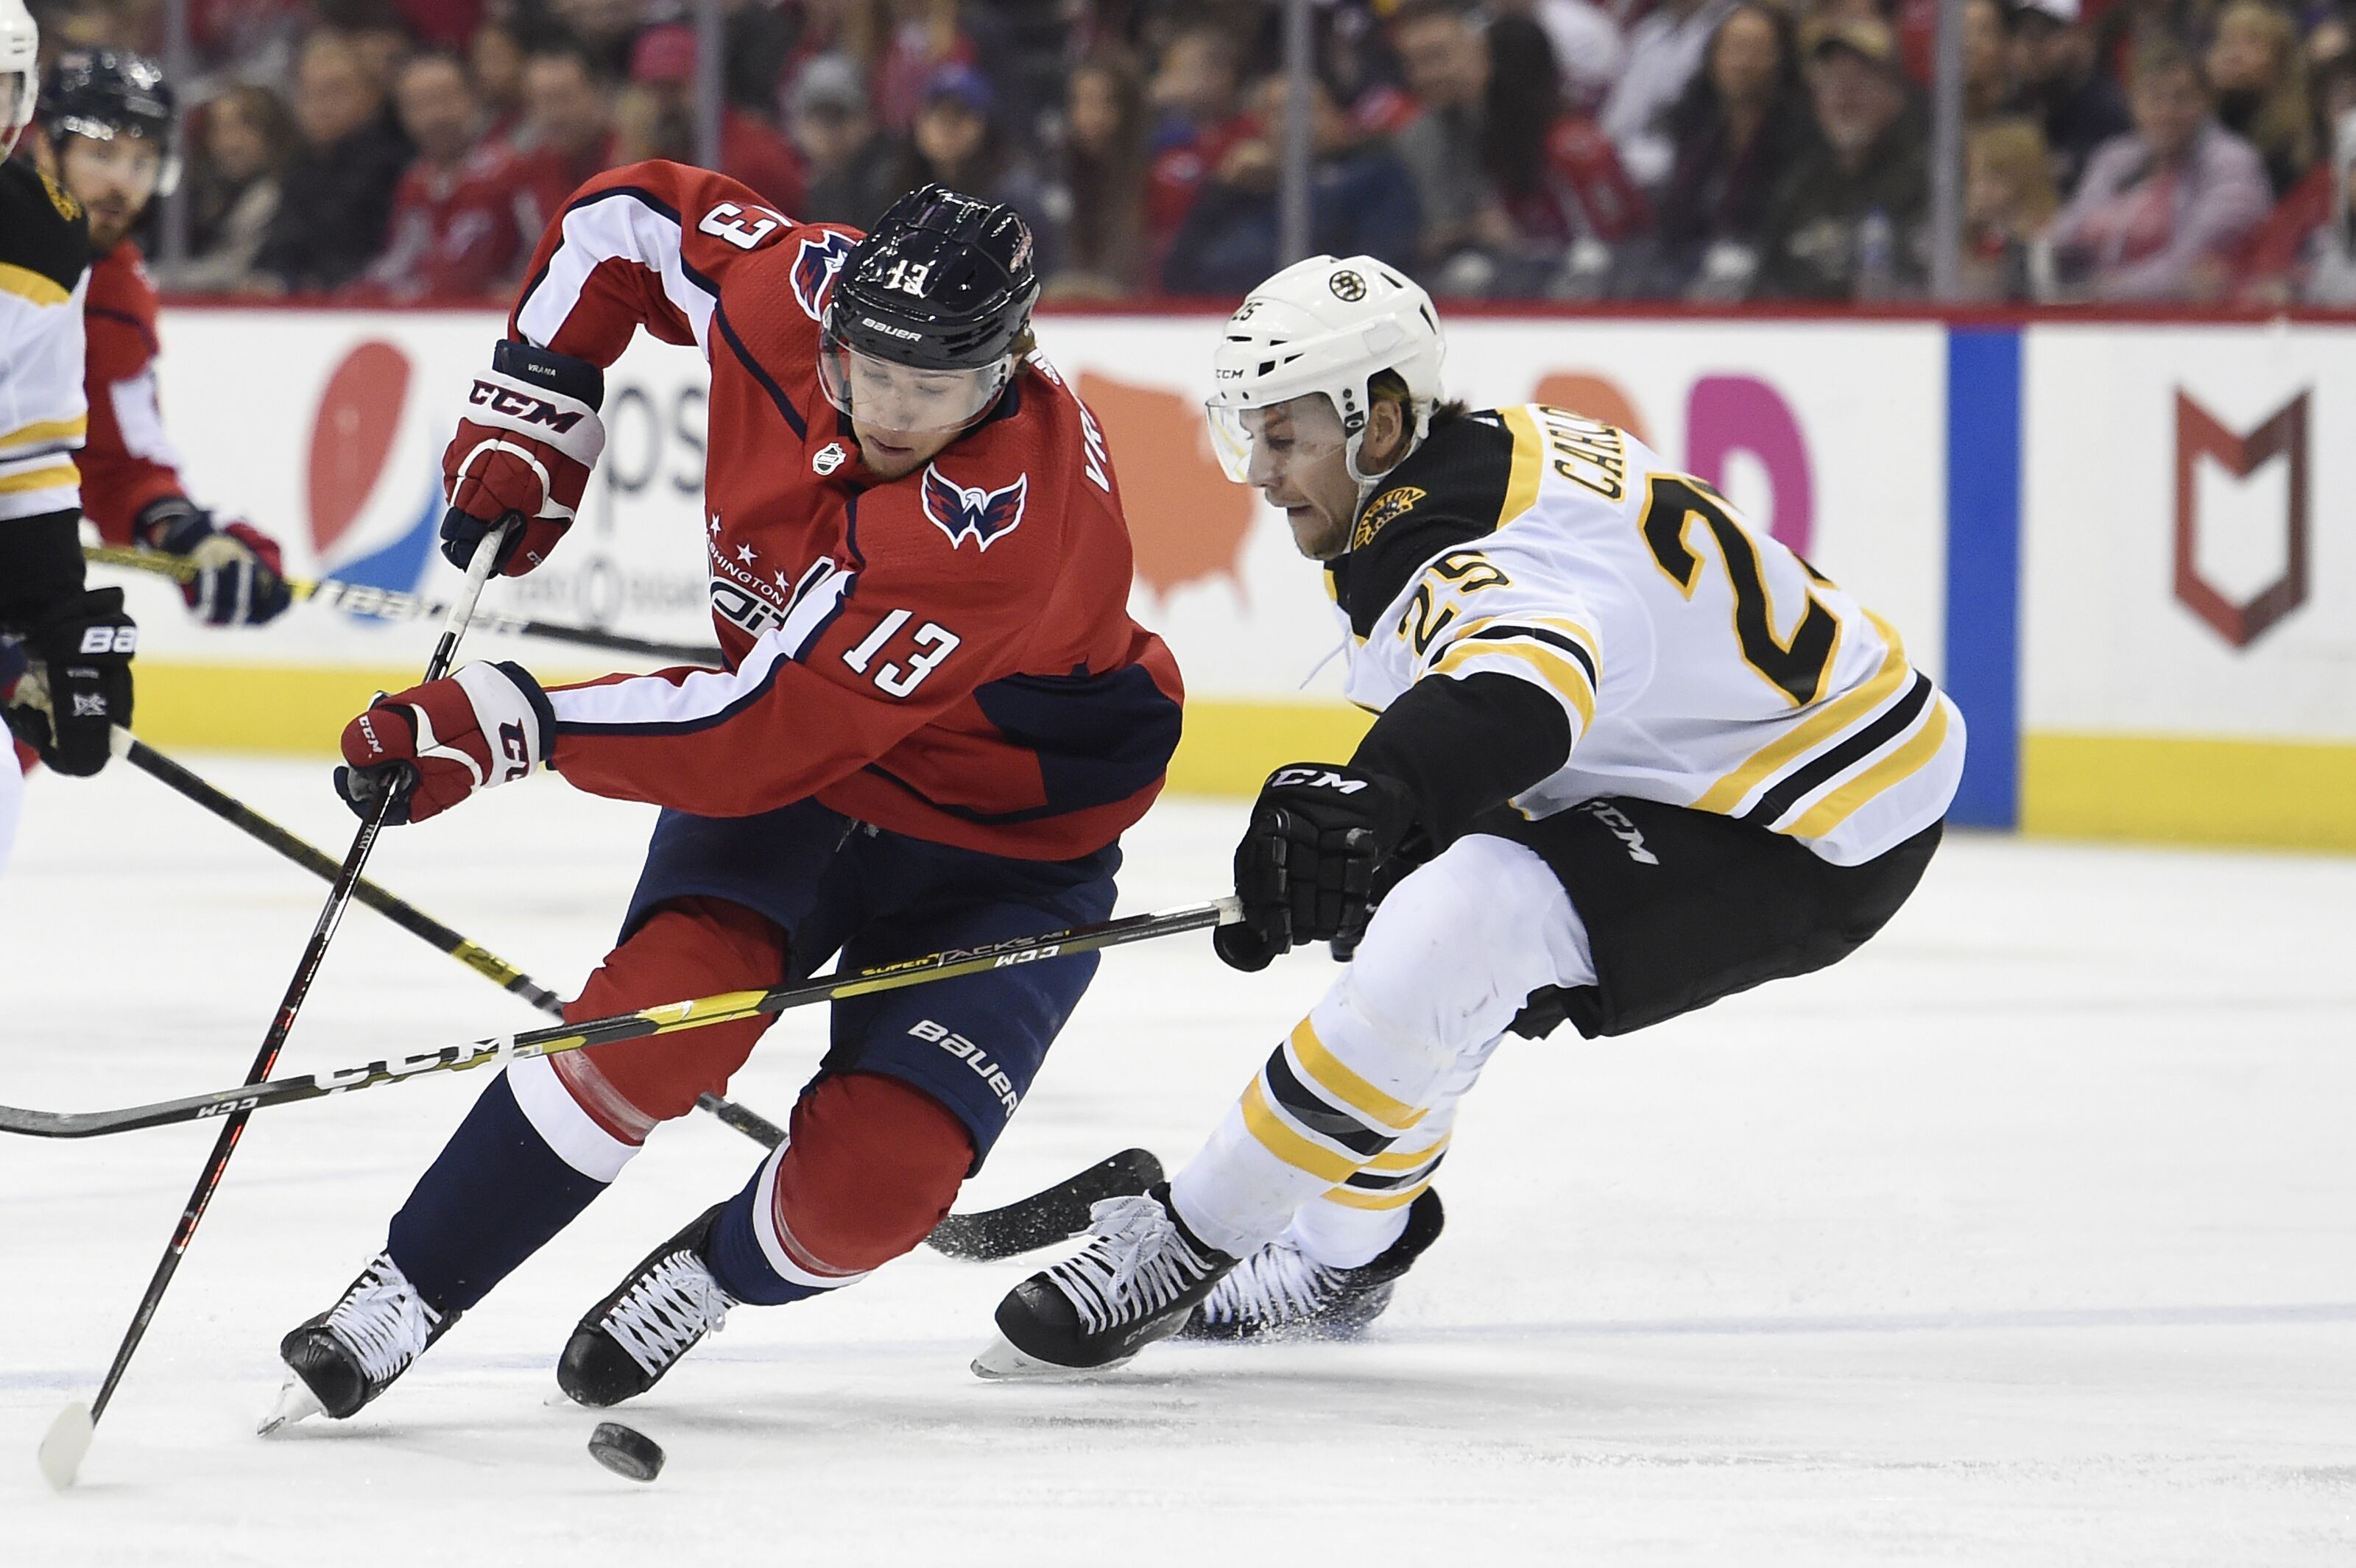 Boston Bruins: How about putting an offer sheet out to Jakub Vrana?